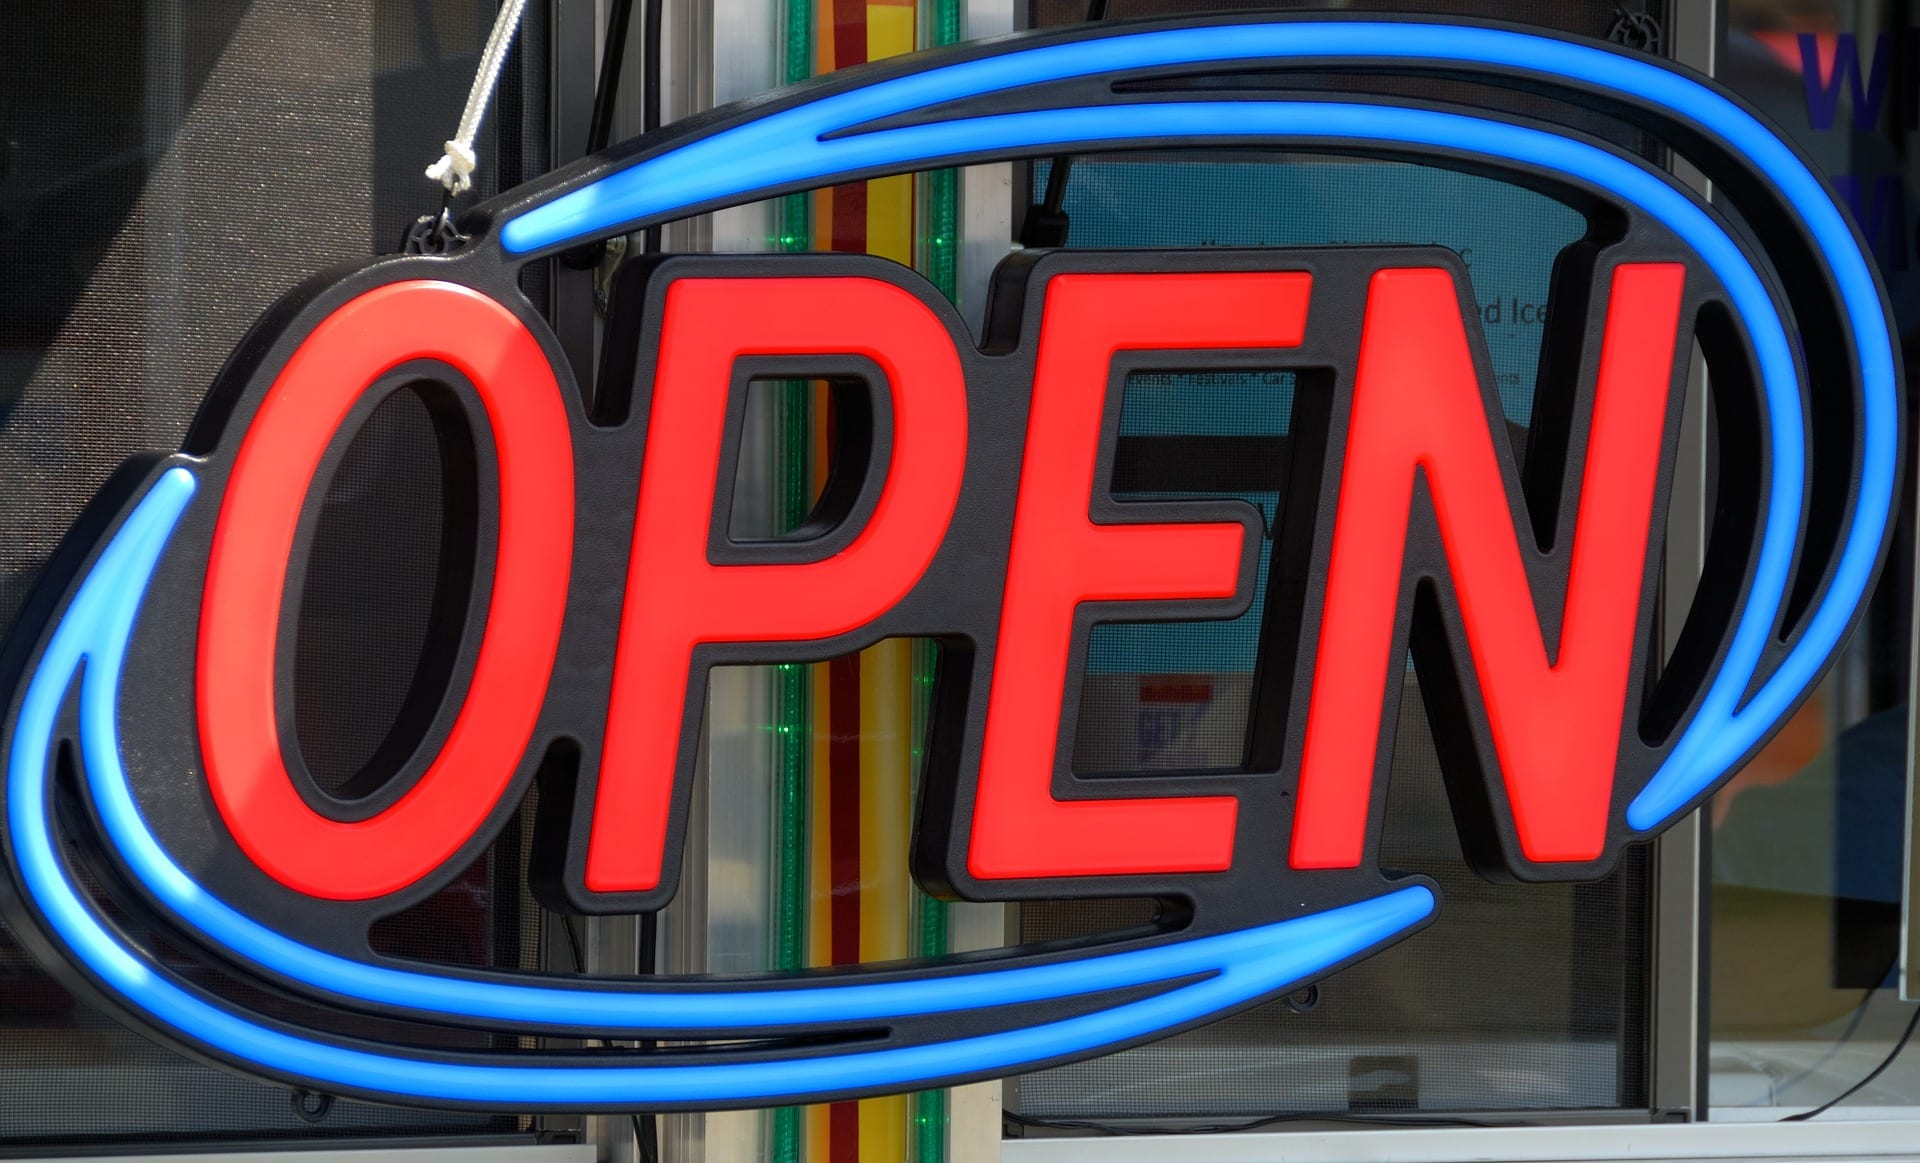 open-sign-1745436_1920